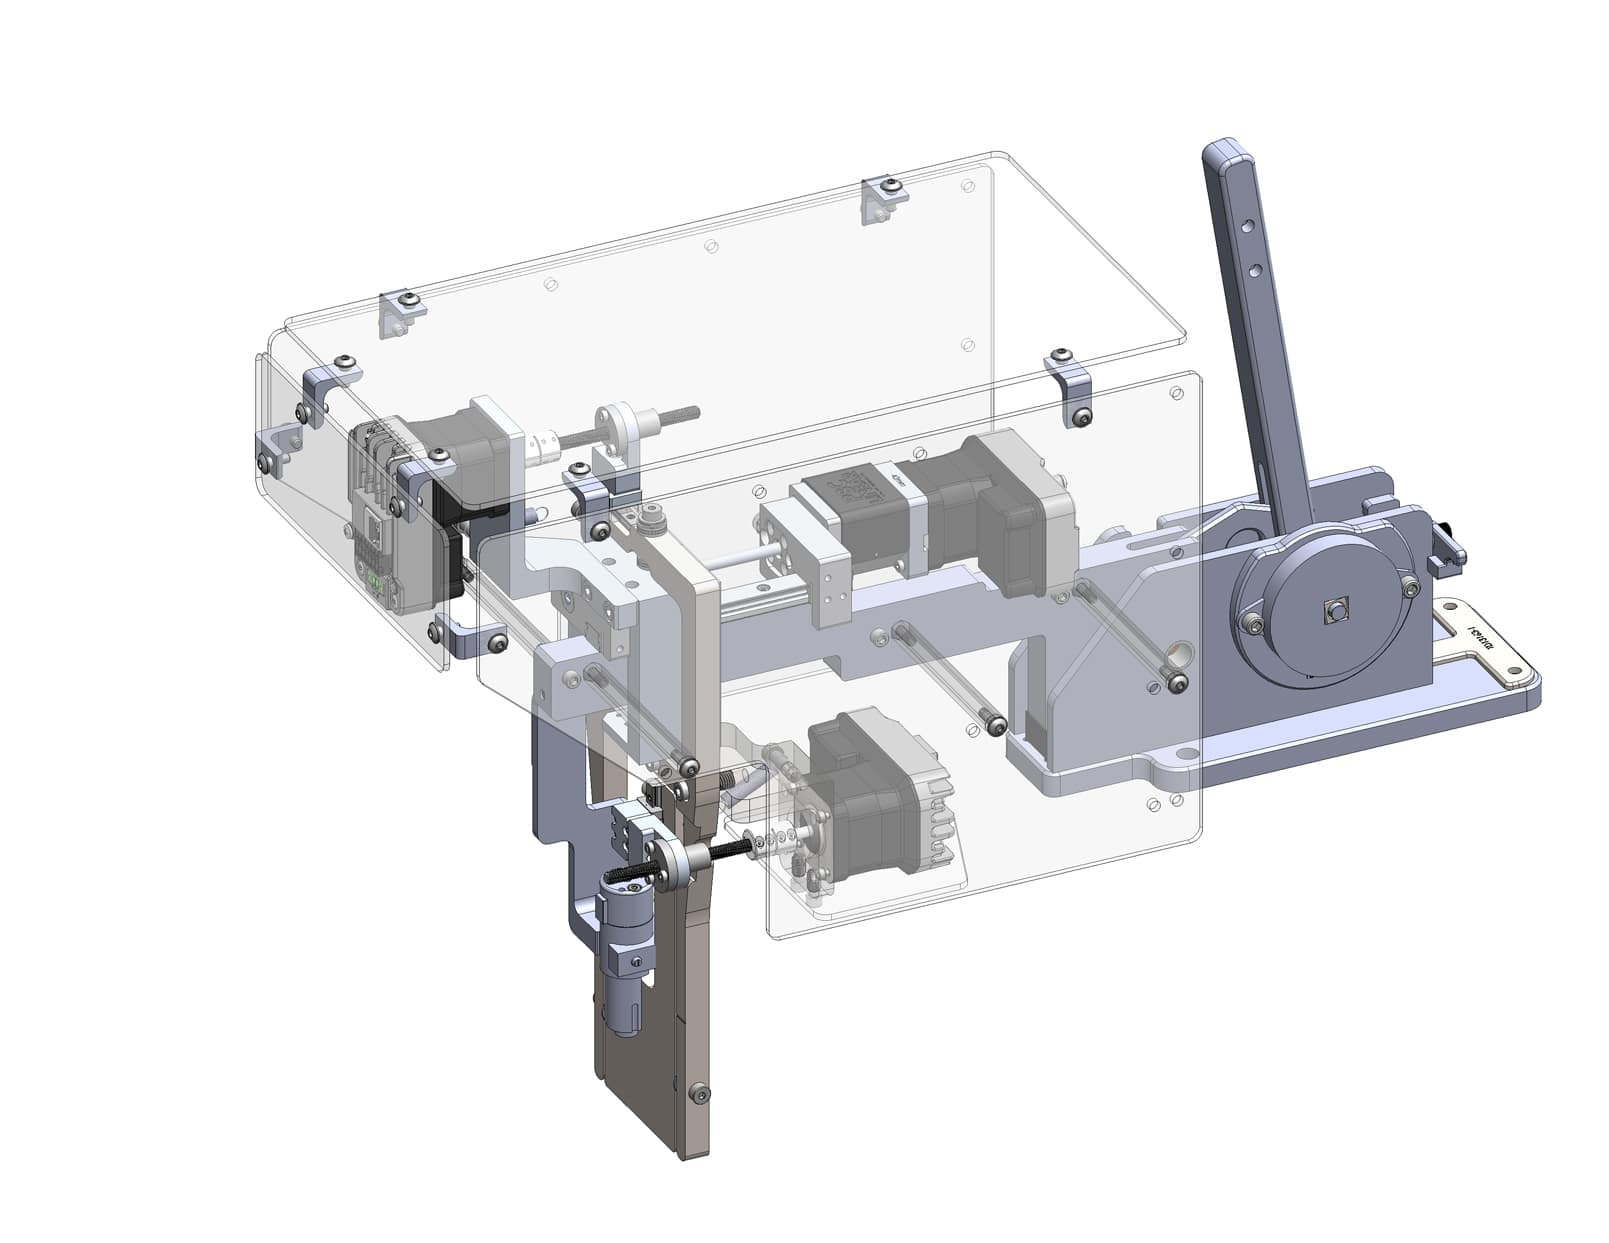 3-axis-motorized-test-fixture